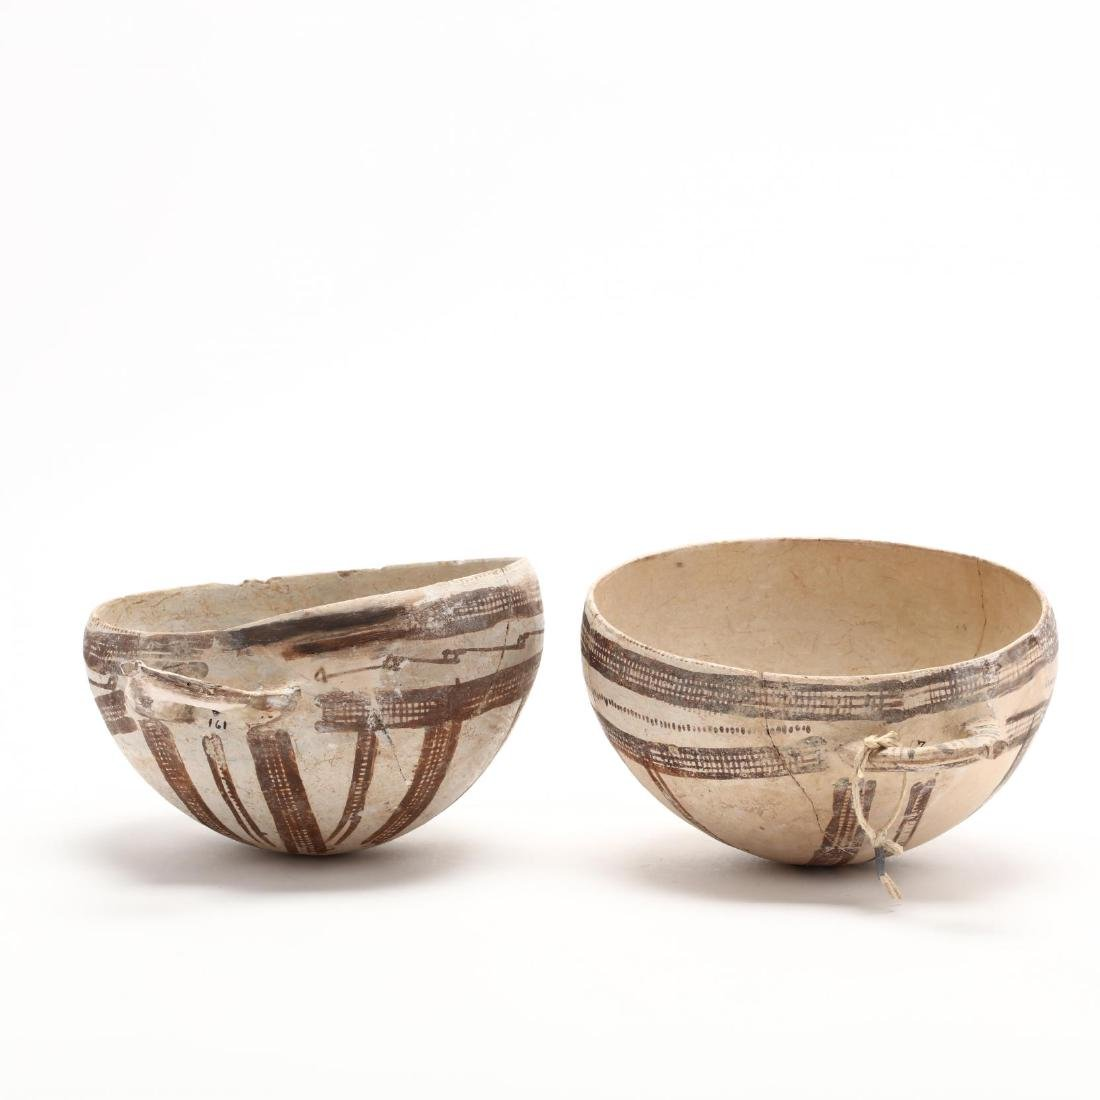 Pair of Cypriot Late Bronze Age White Slip Bowls - 2